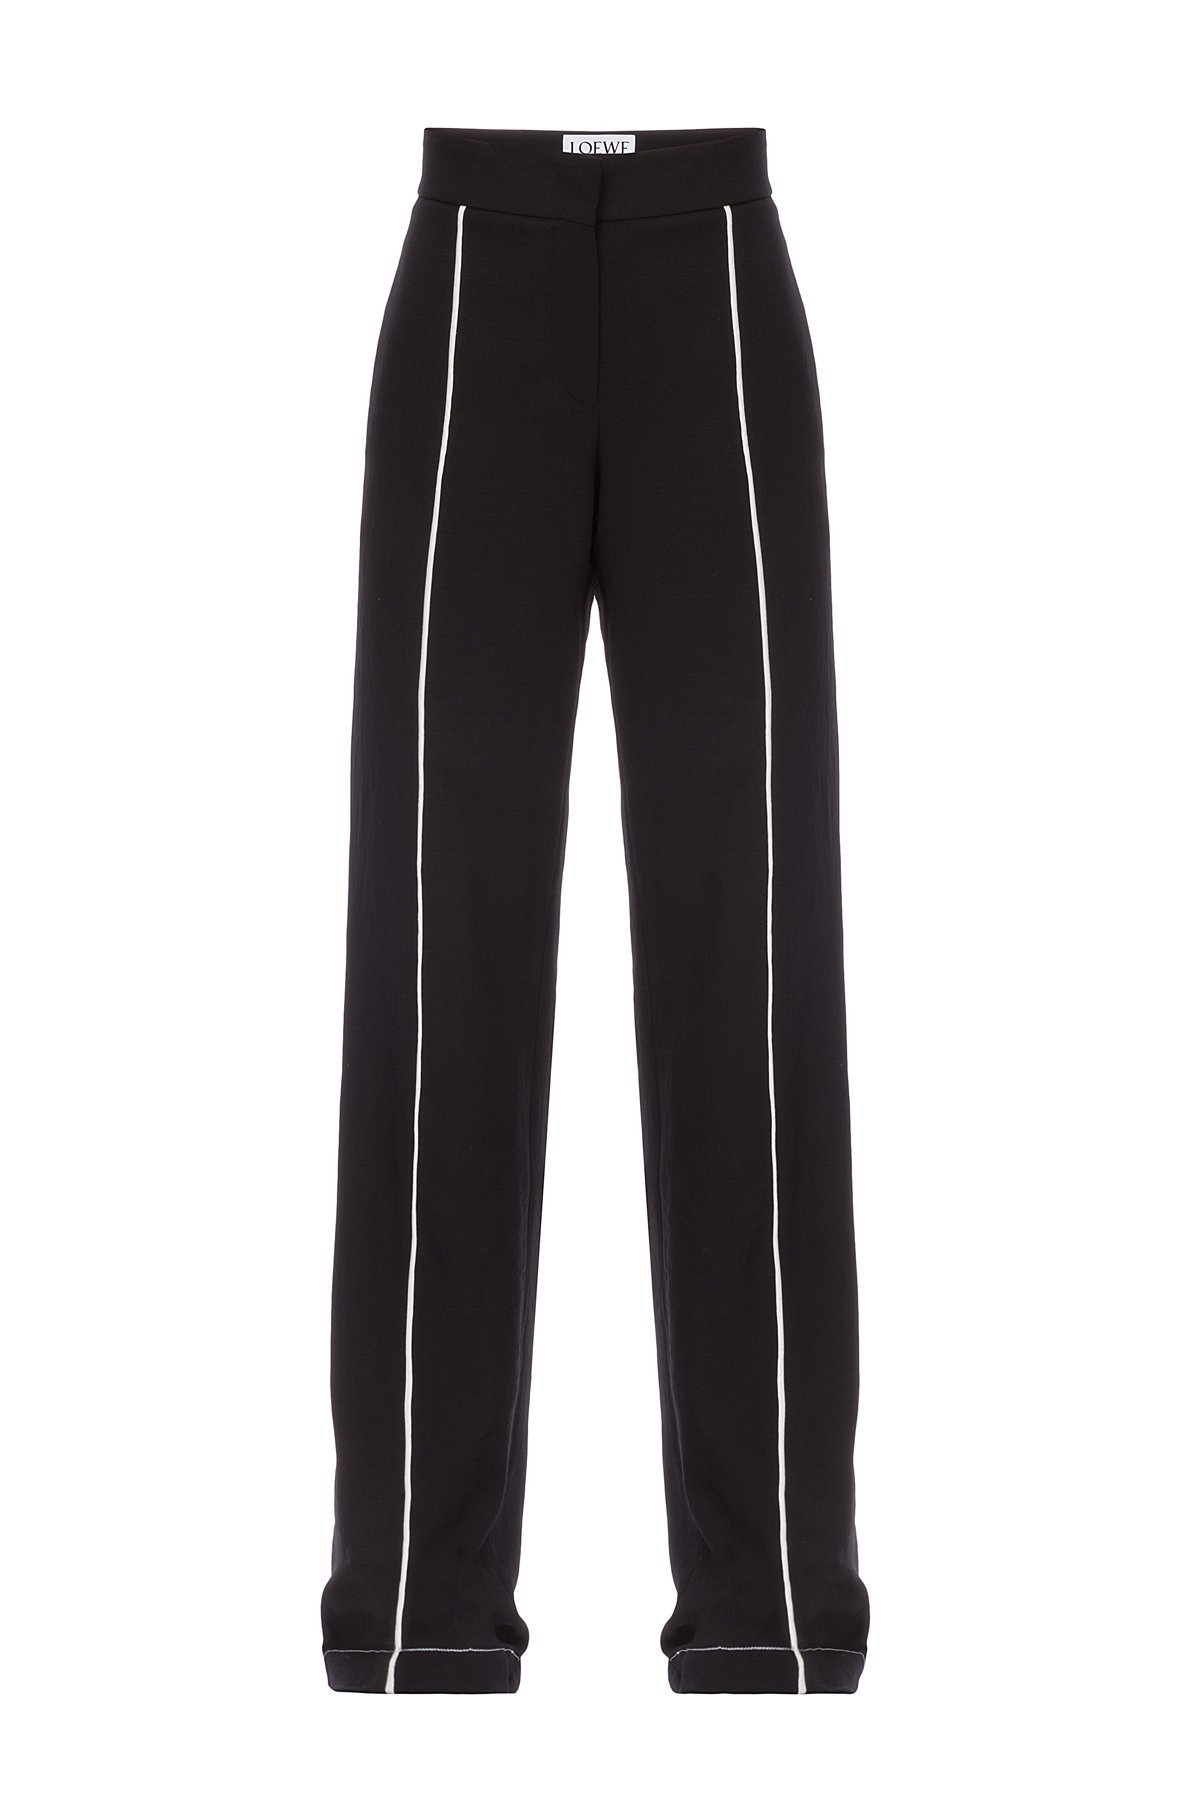 LOEWE Piping Trousers Black/White front